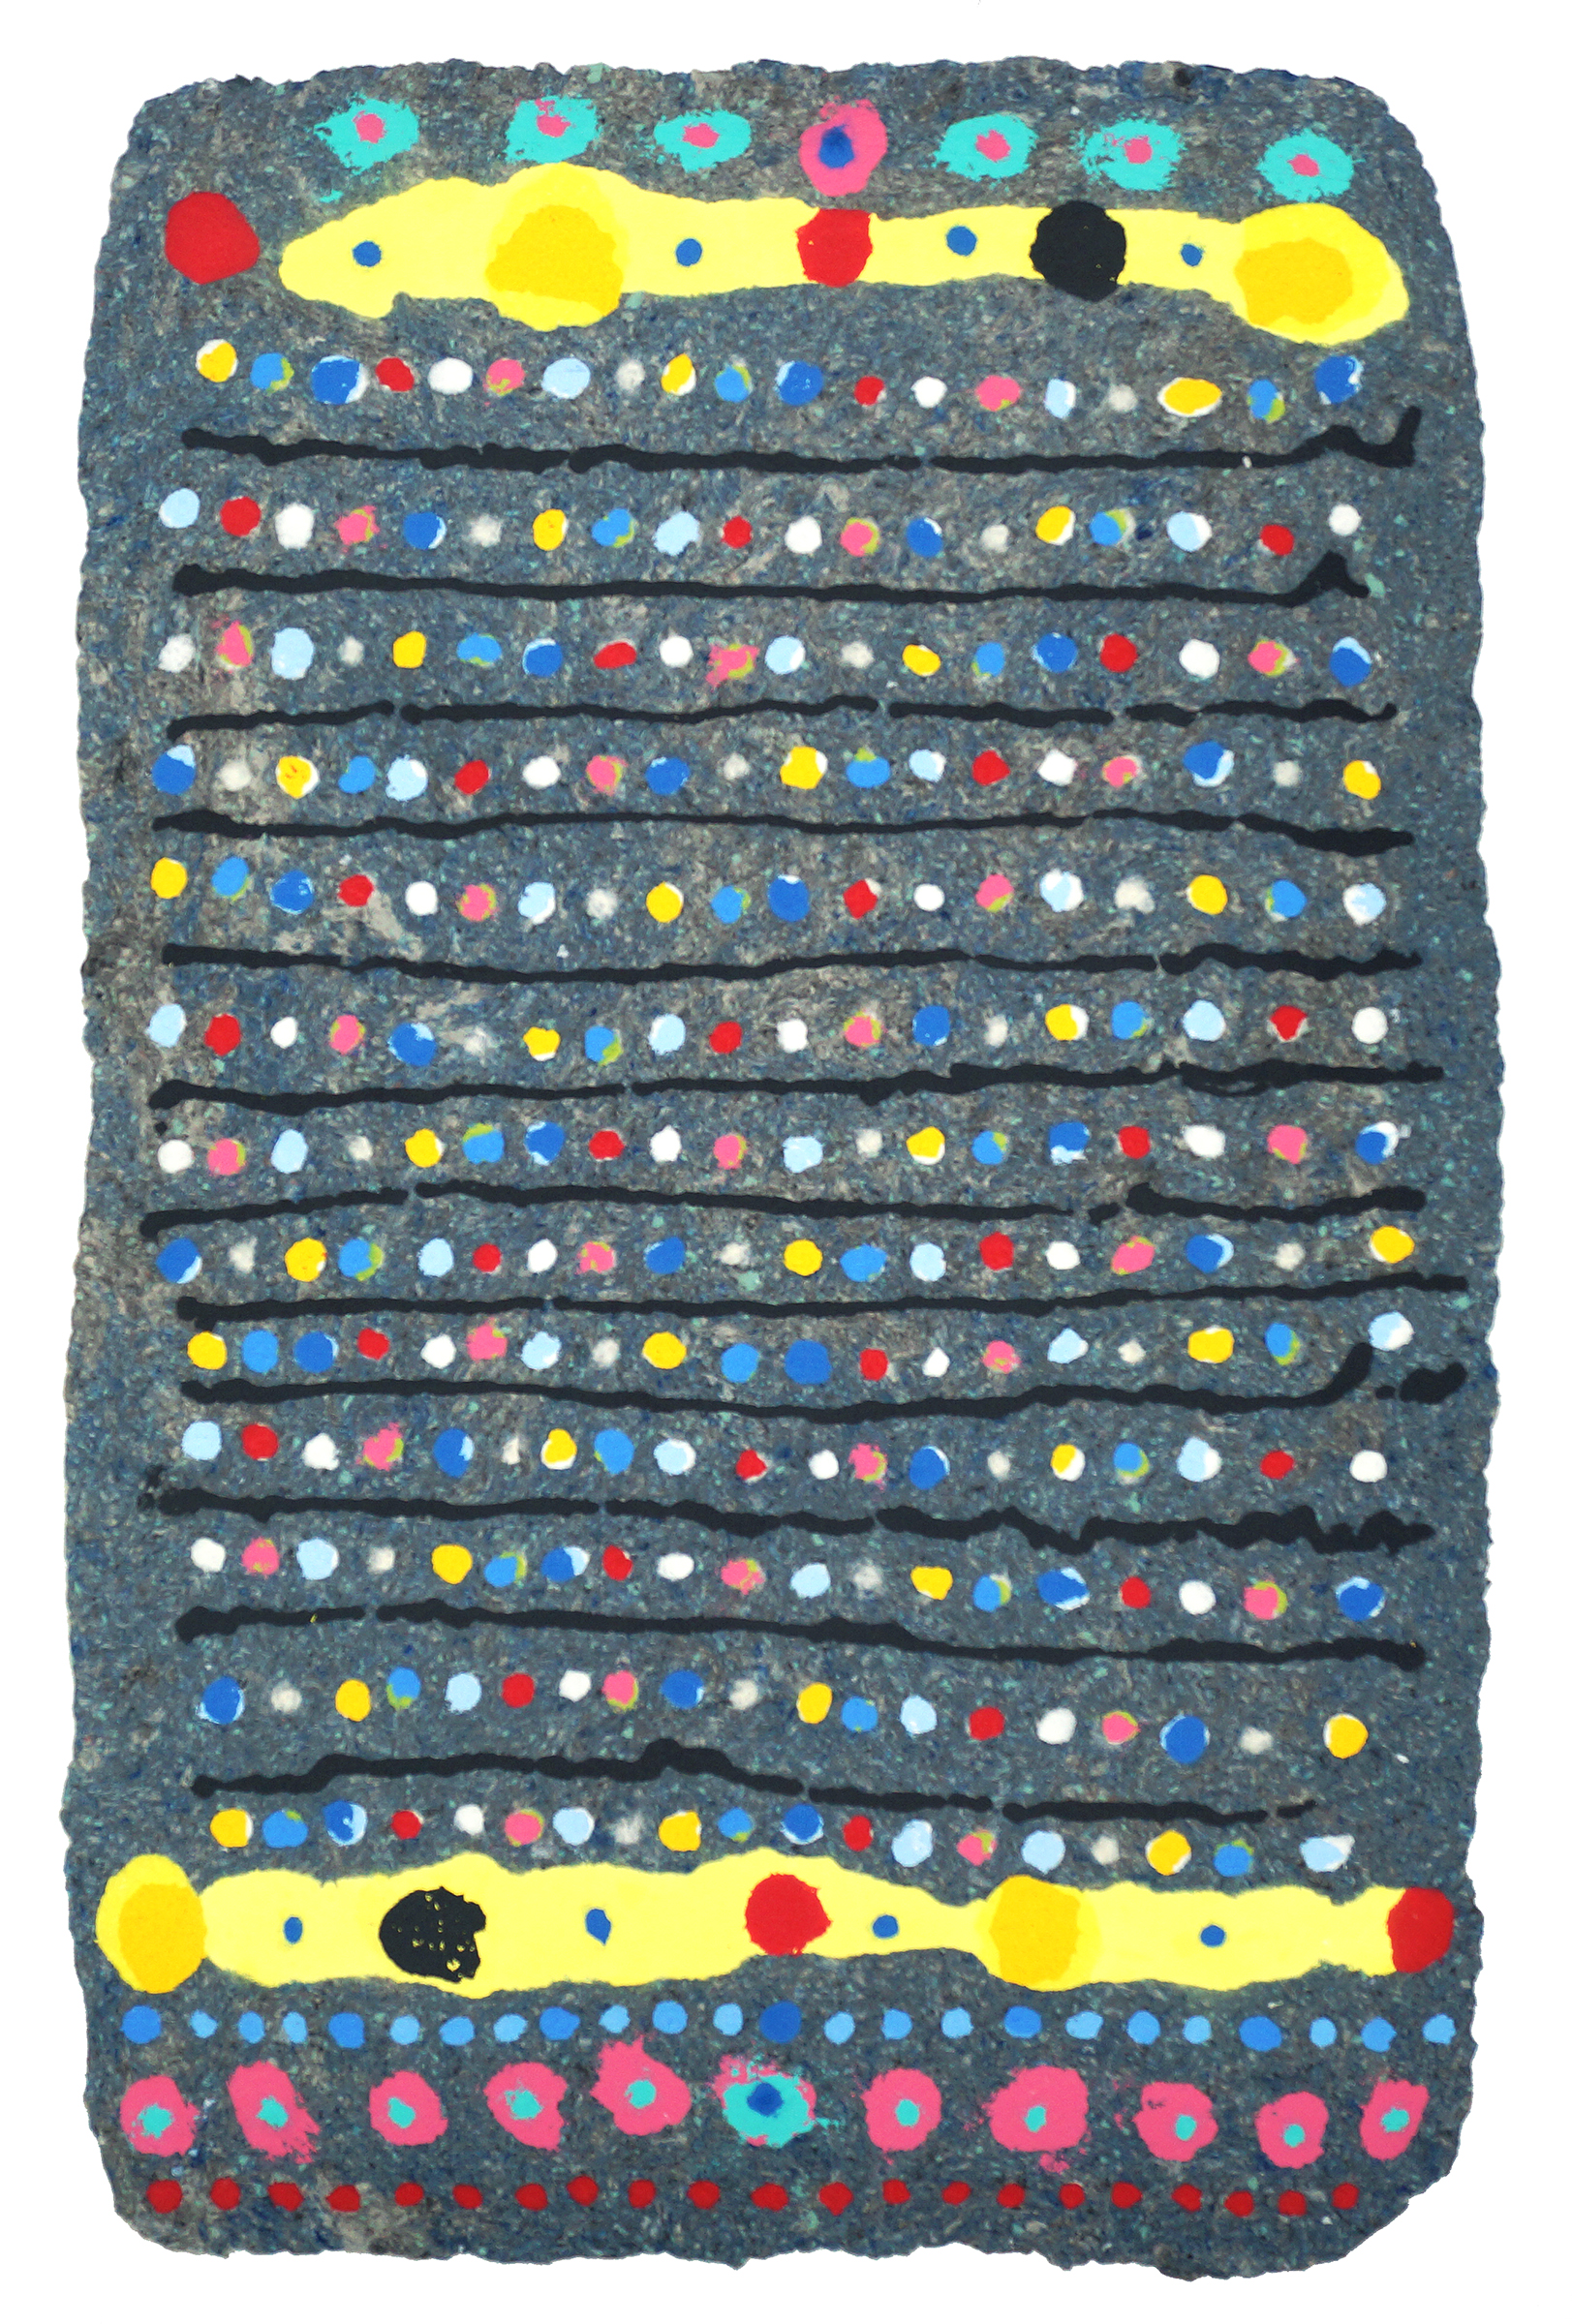 CHAD HAYWARD   Untitled (3) - 2017  Handmade paper with pigmented paper pulp, 41 1/2 x 26 1/2 inches